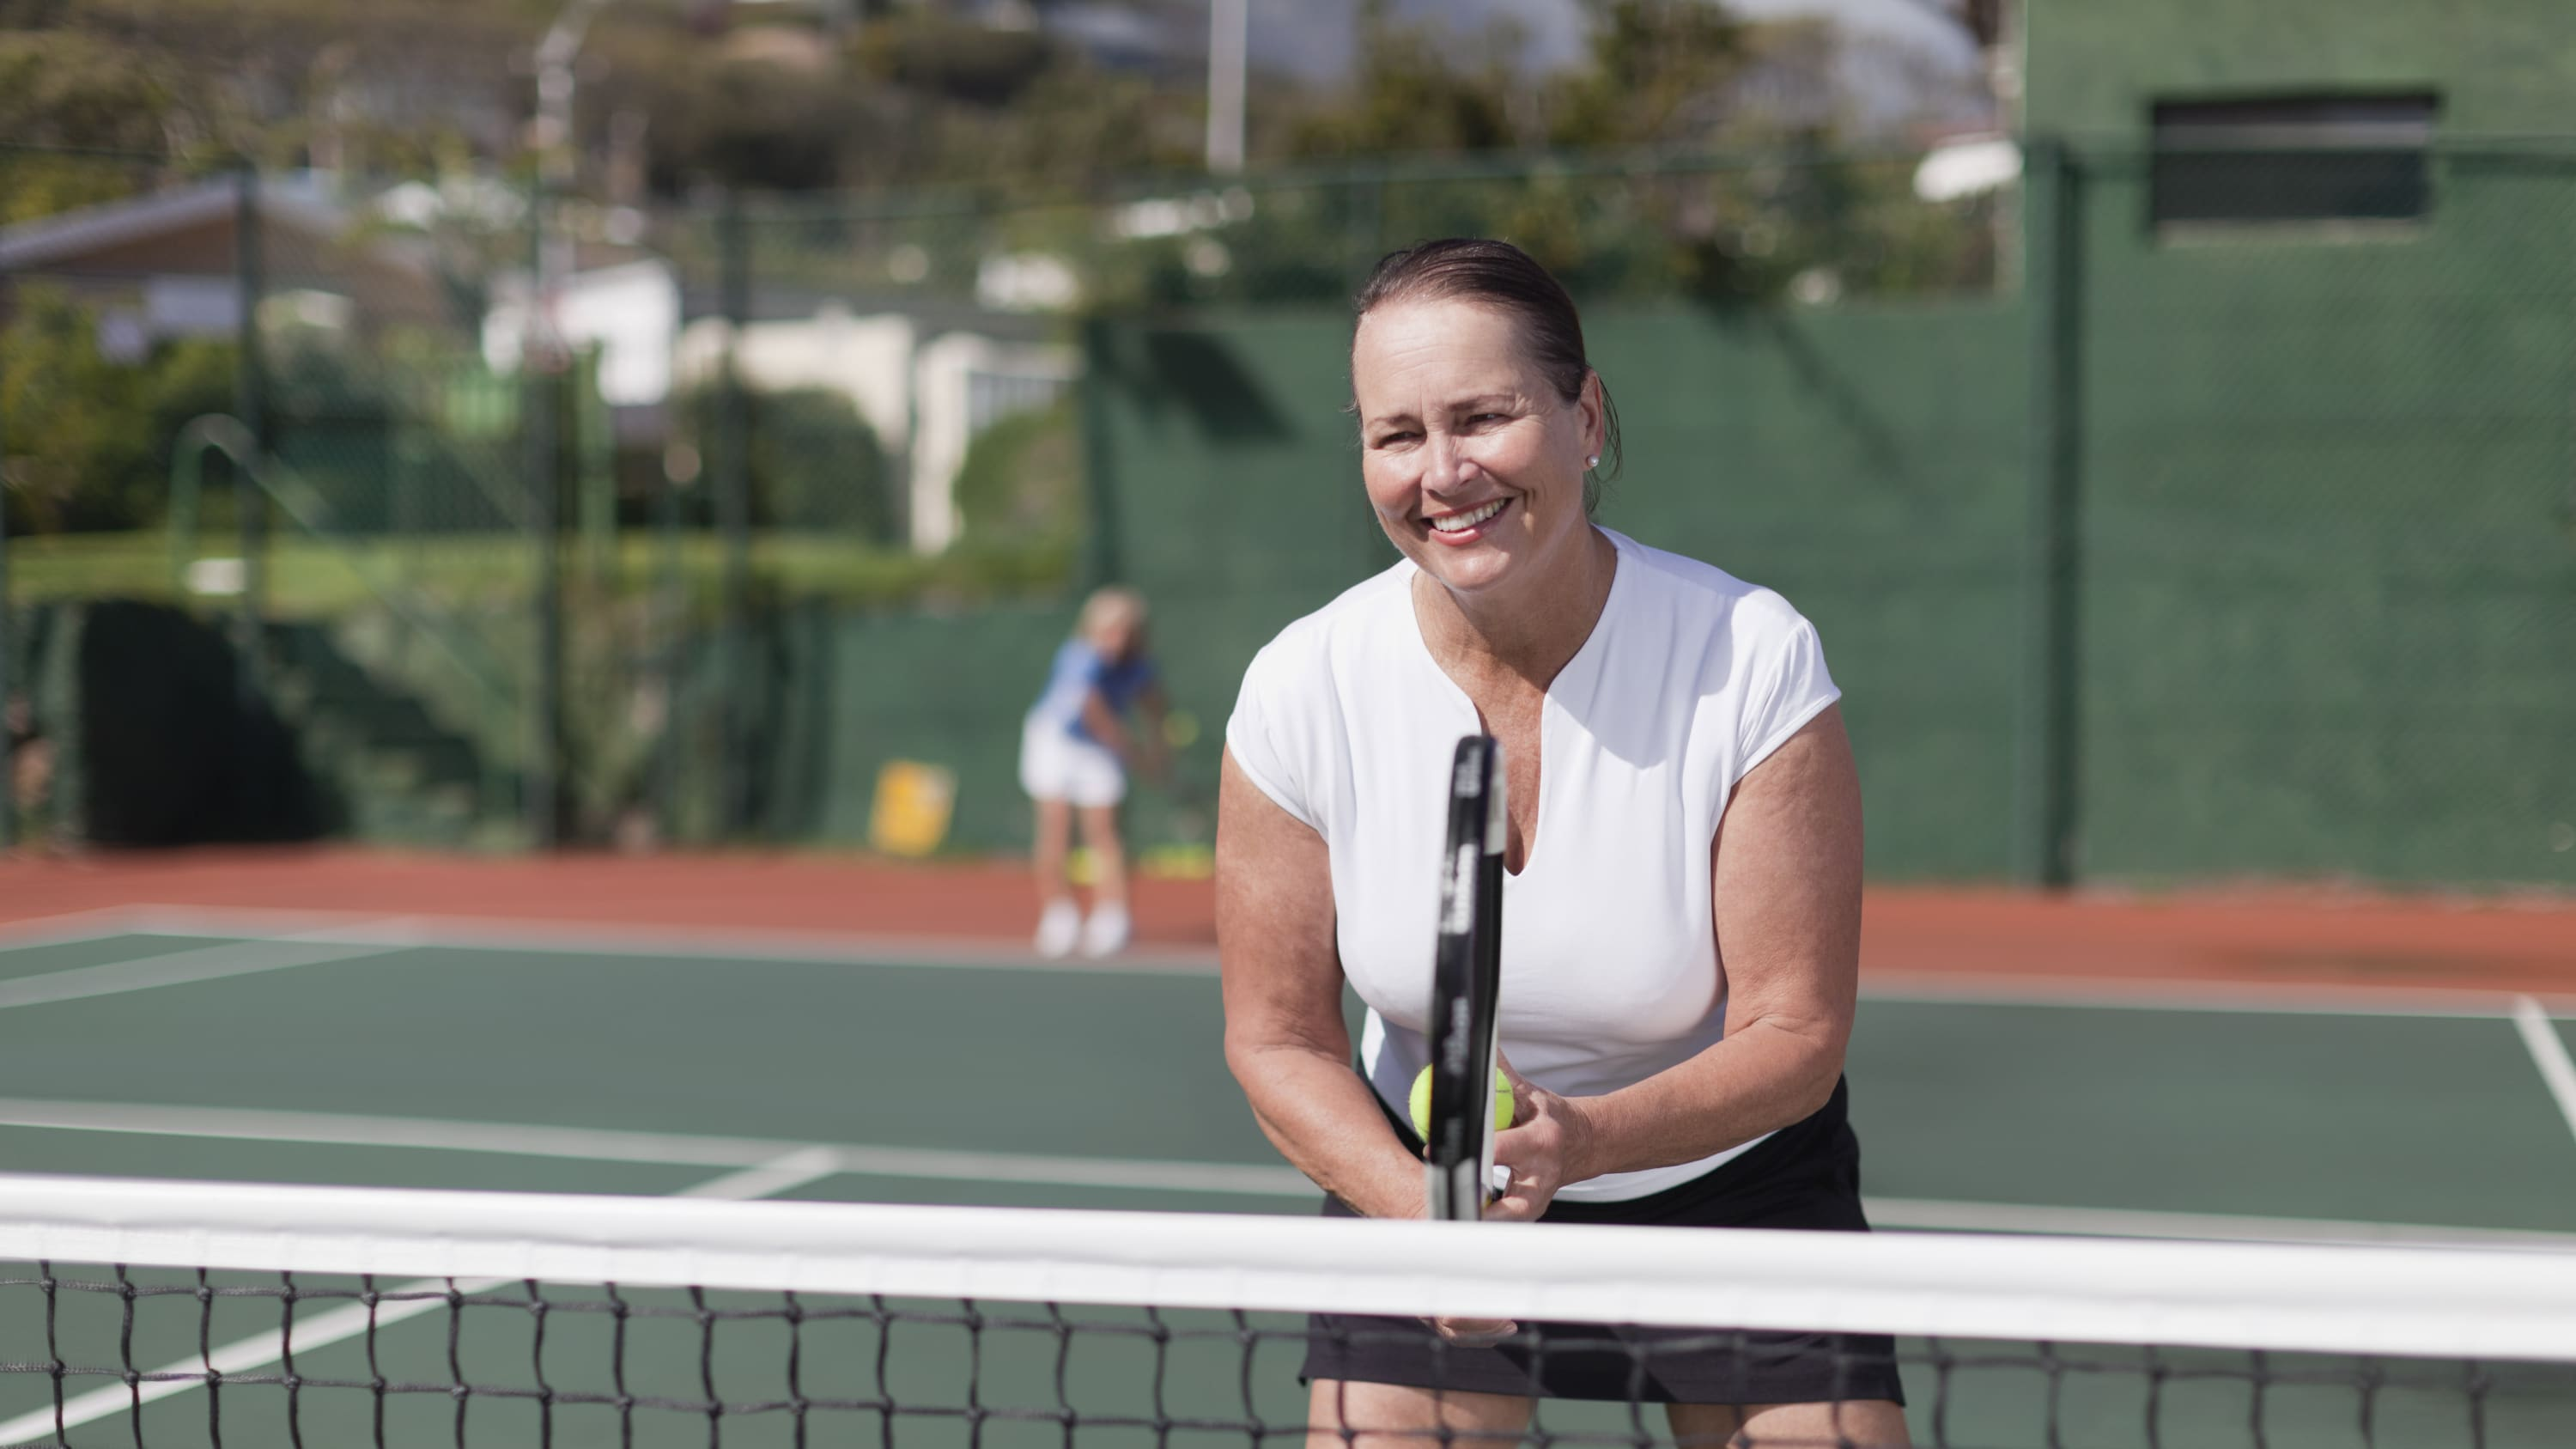 A woman back to enjoying her favorite activity of tennis after being treated for structural heart disease.